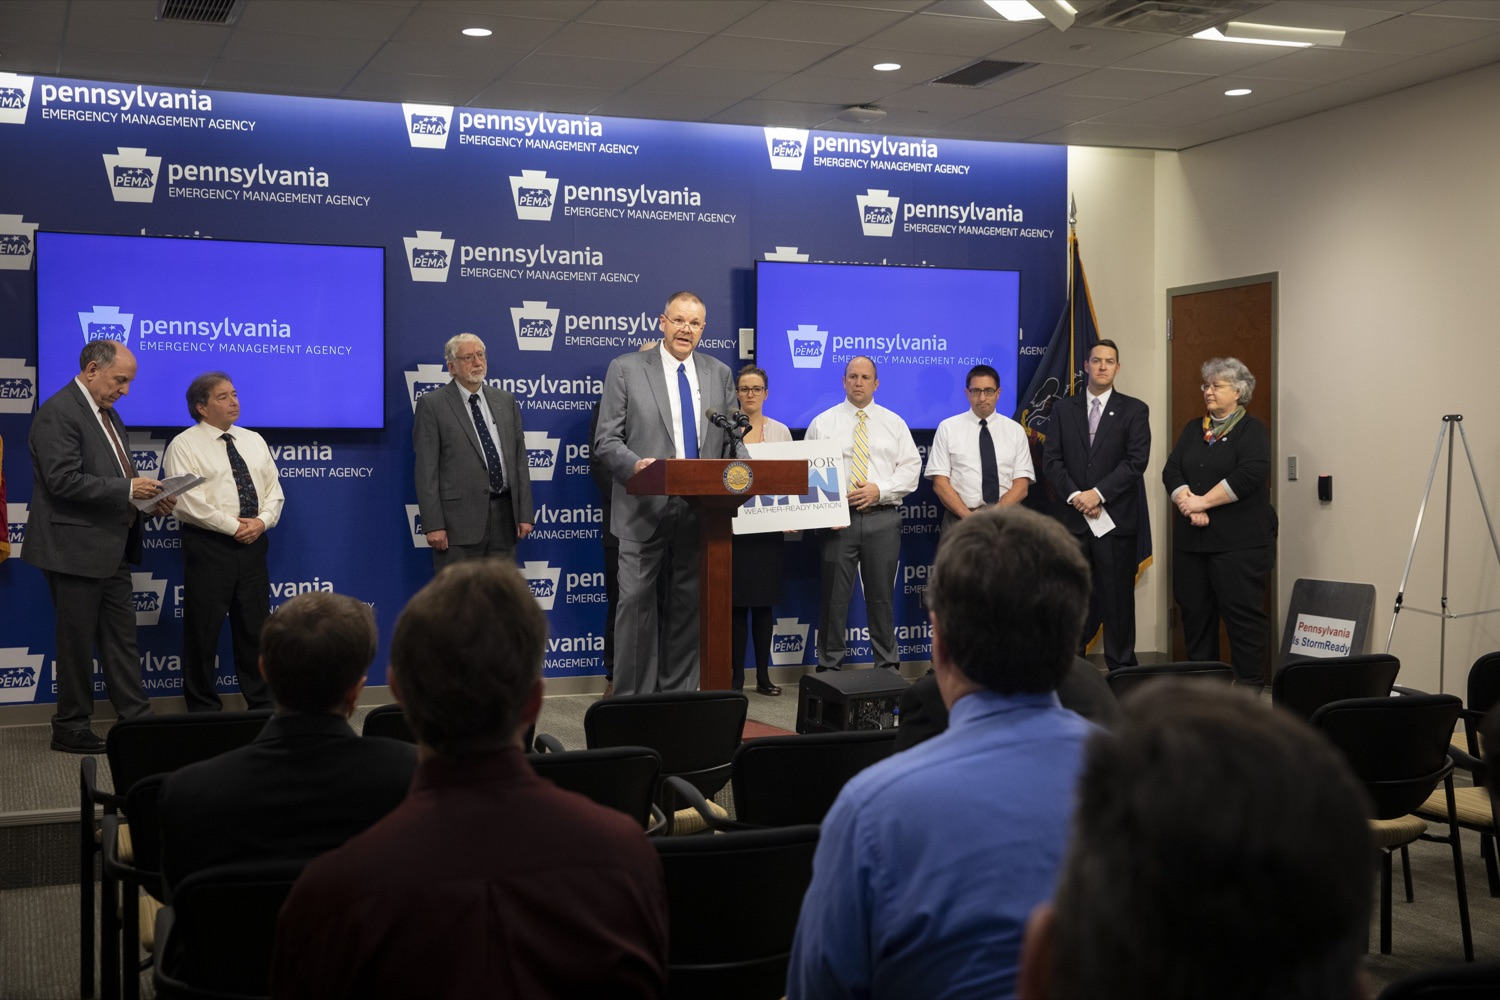 "<a href=""http://filesource.abacast.com/commonwealthofpa/photo/17500_pema_StormReady_cz_09.JPG"" target=""_blank"">⇣ Download Photo<br></a>PEMA Director Randy Padfield announces that Pennsylvania is one of only six states in the nation to achieve StoryReady status, in Harrisburg on November 20, 2019."